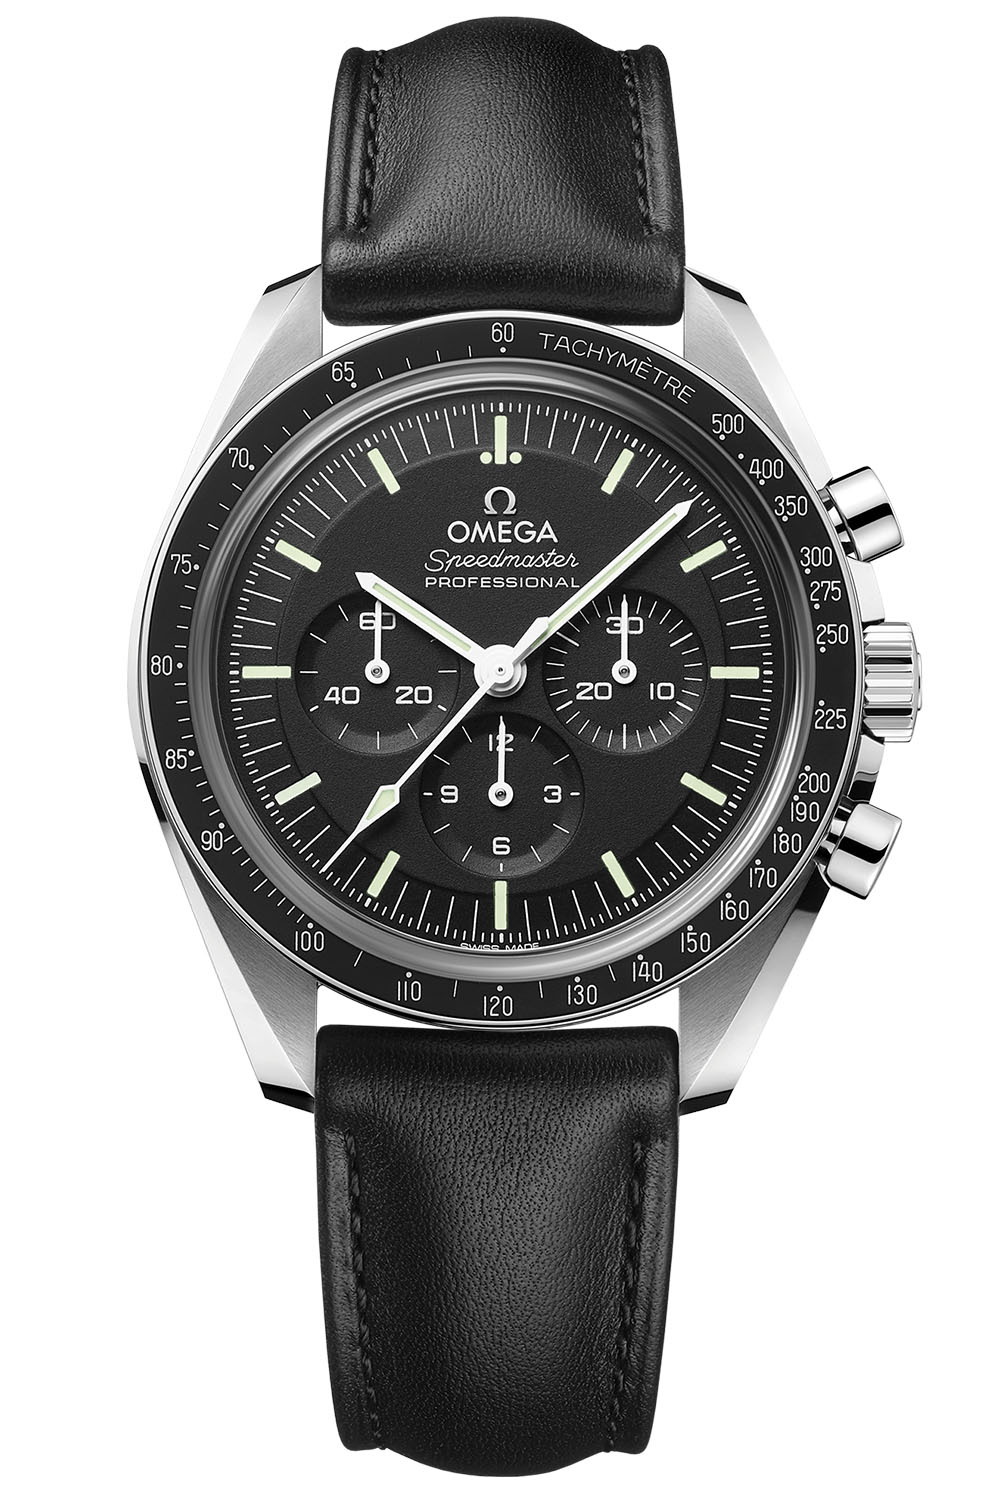 2021 Omega Speedmaster Moonwatch Professional Master Chronometer Sapphire leather strap